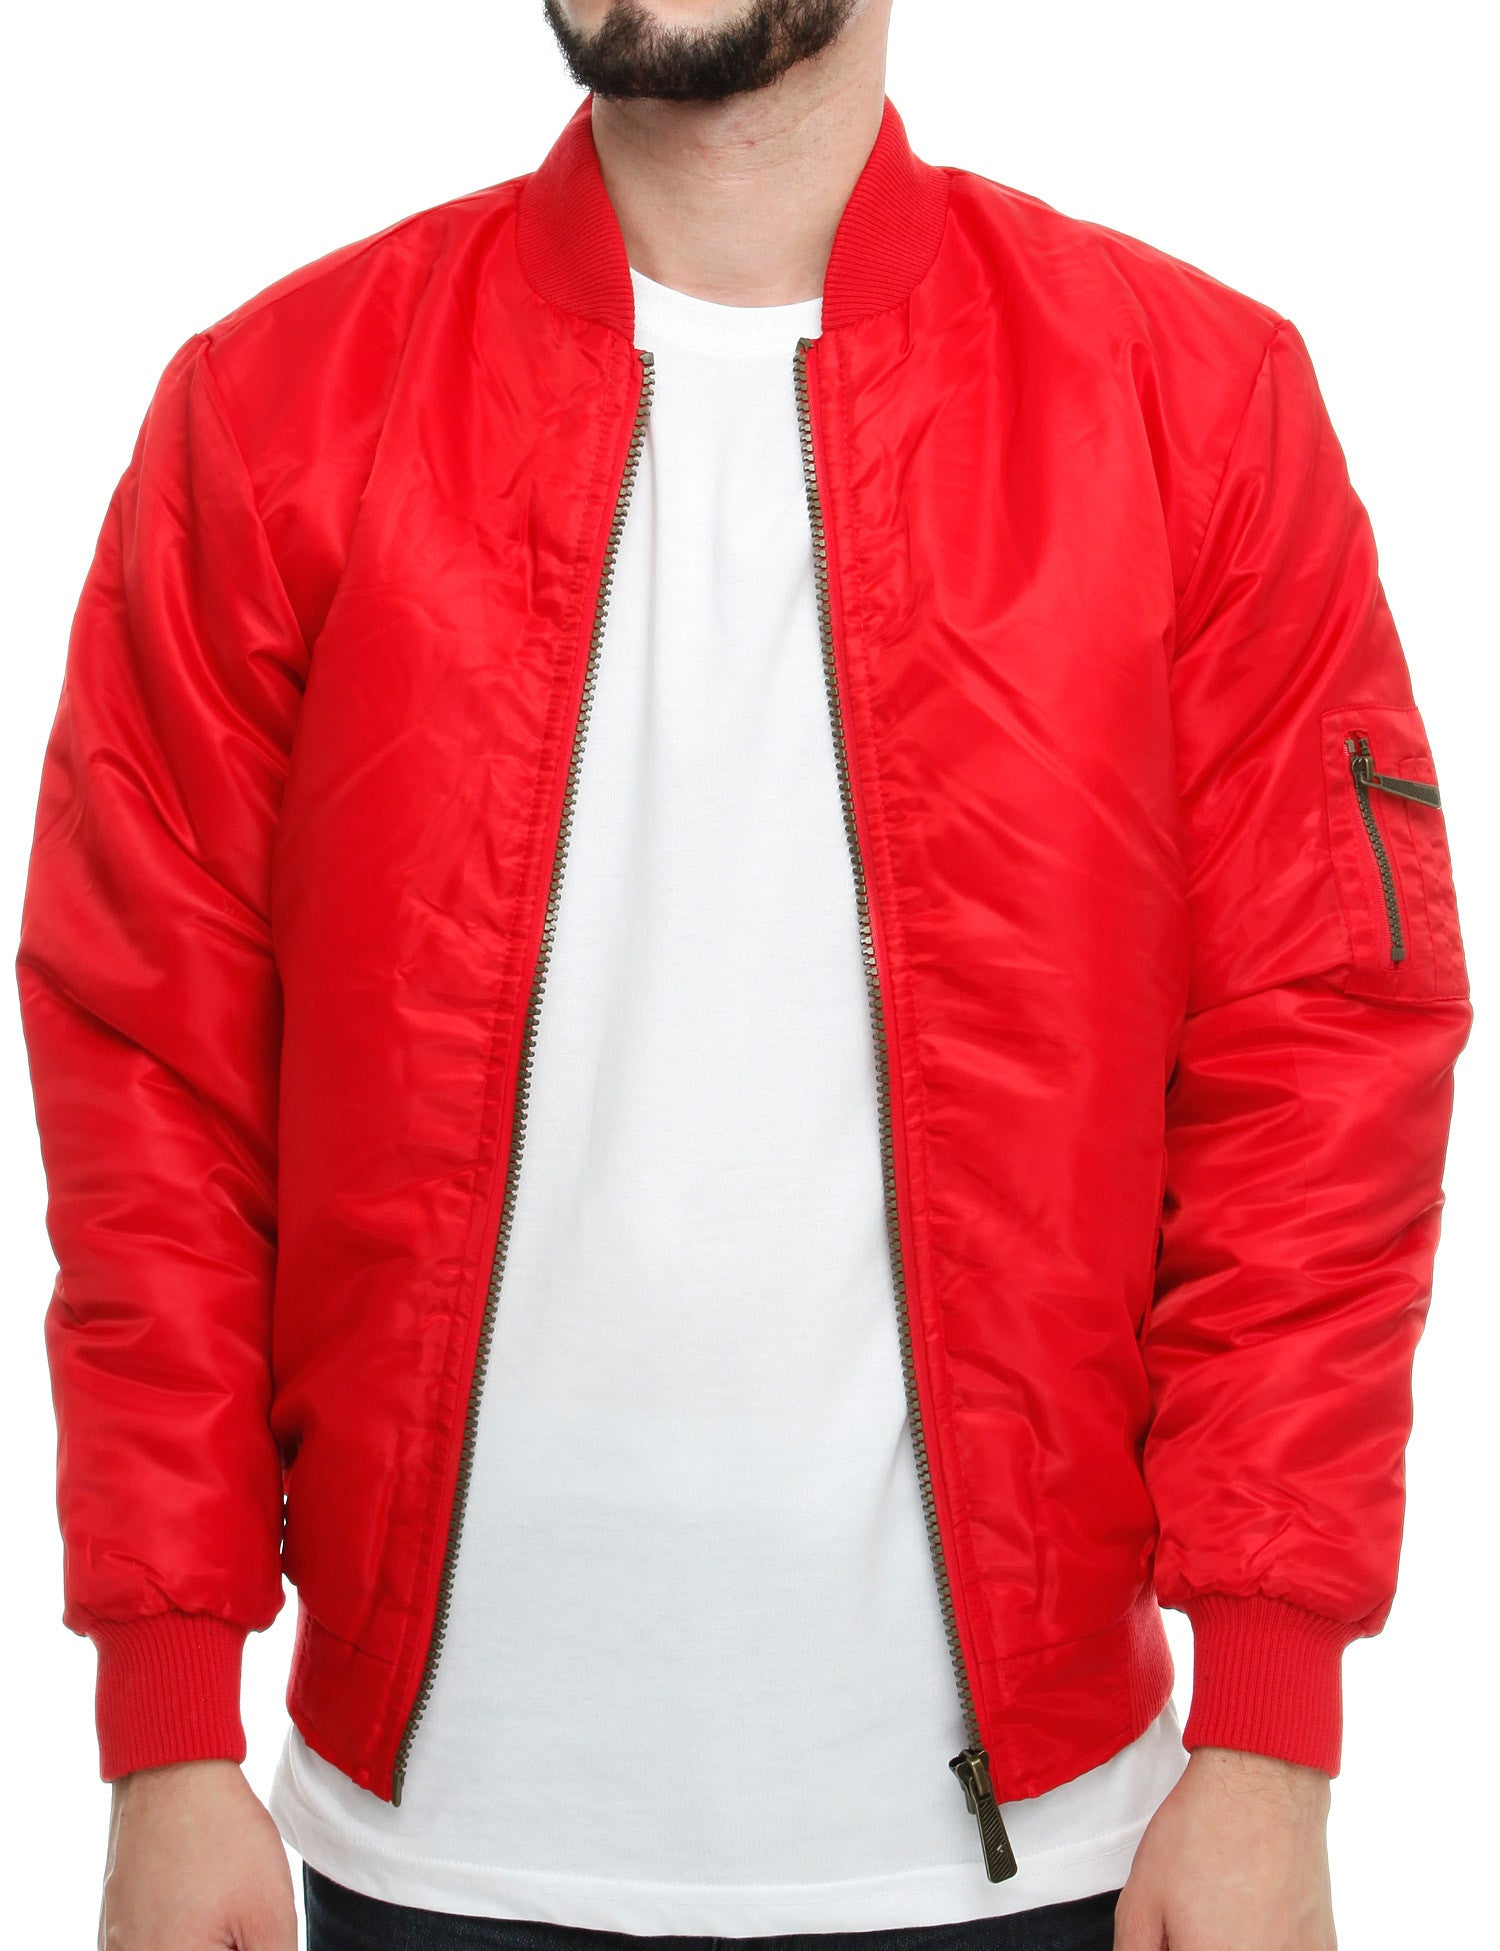 Soul Star MJ-MA1 Bomber Jacket Khaki Red